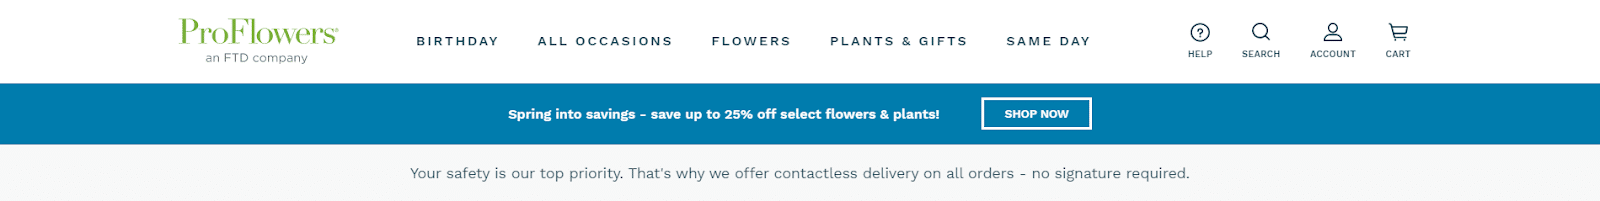 Pro Flowers an FTD company landing page